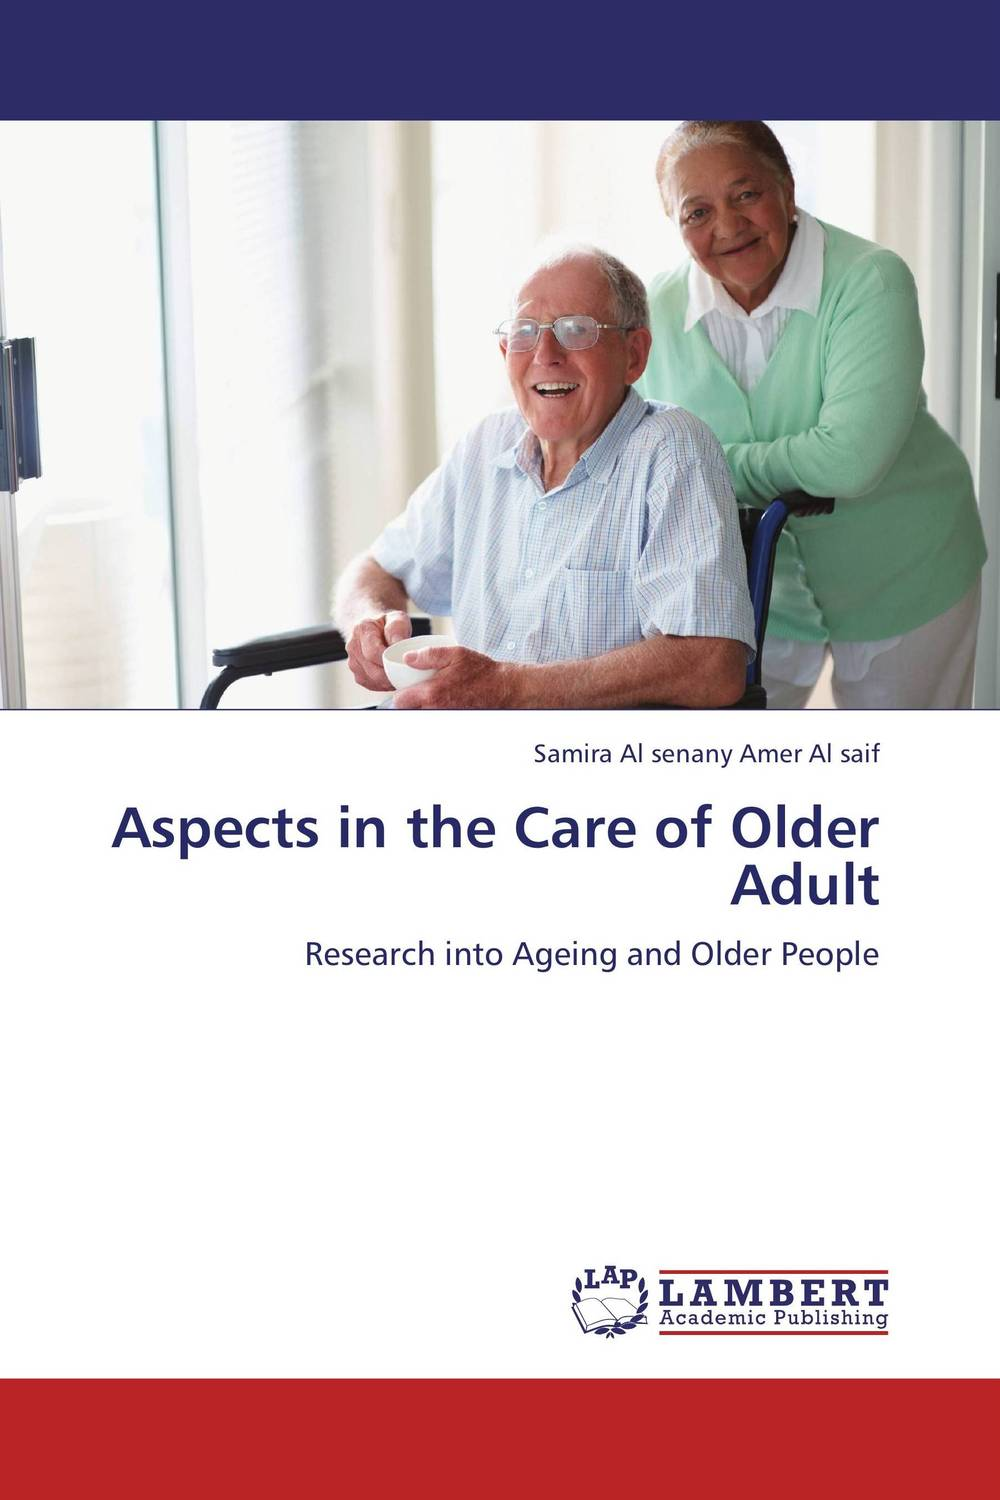 Aspects in the Care of Older Adult best practice with older people